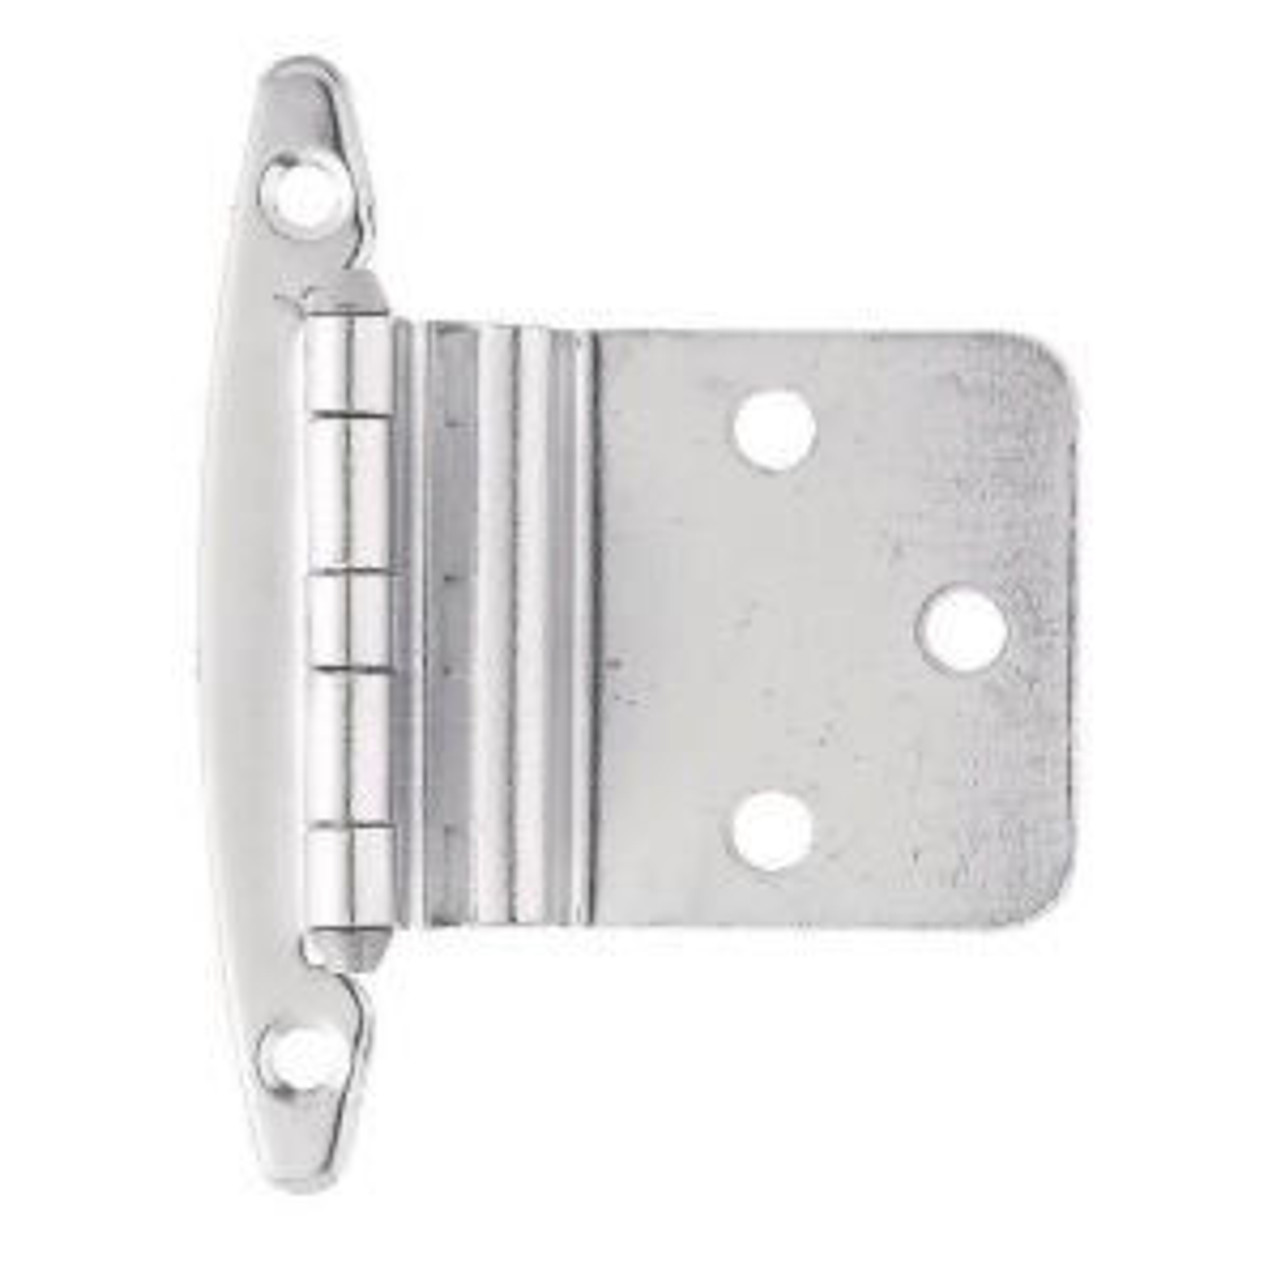 "H00930C-CHR 3/8"" Self Closing Inset Hinge W/O Spring Chrome 2 Pack"